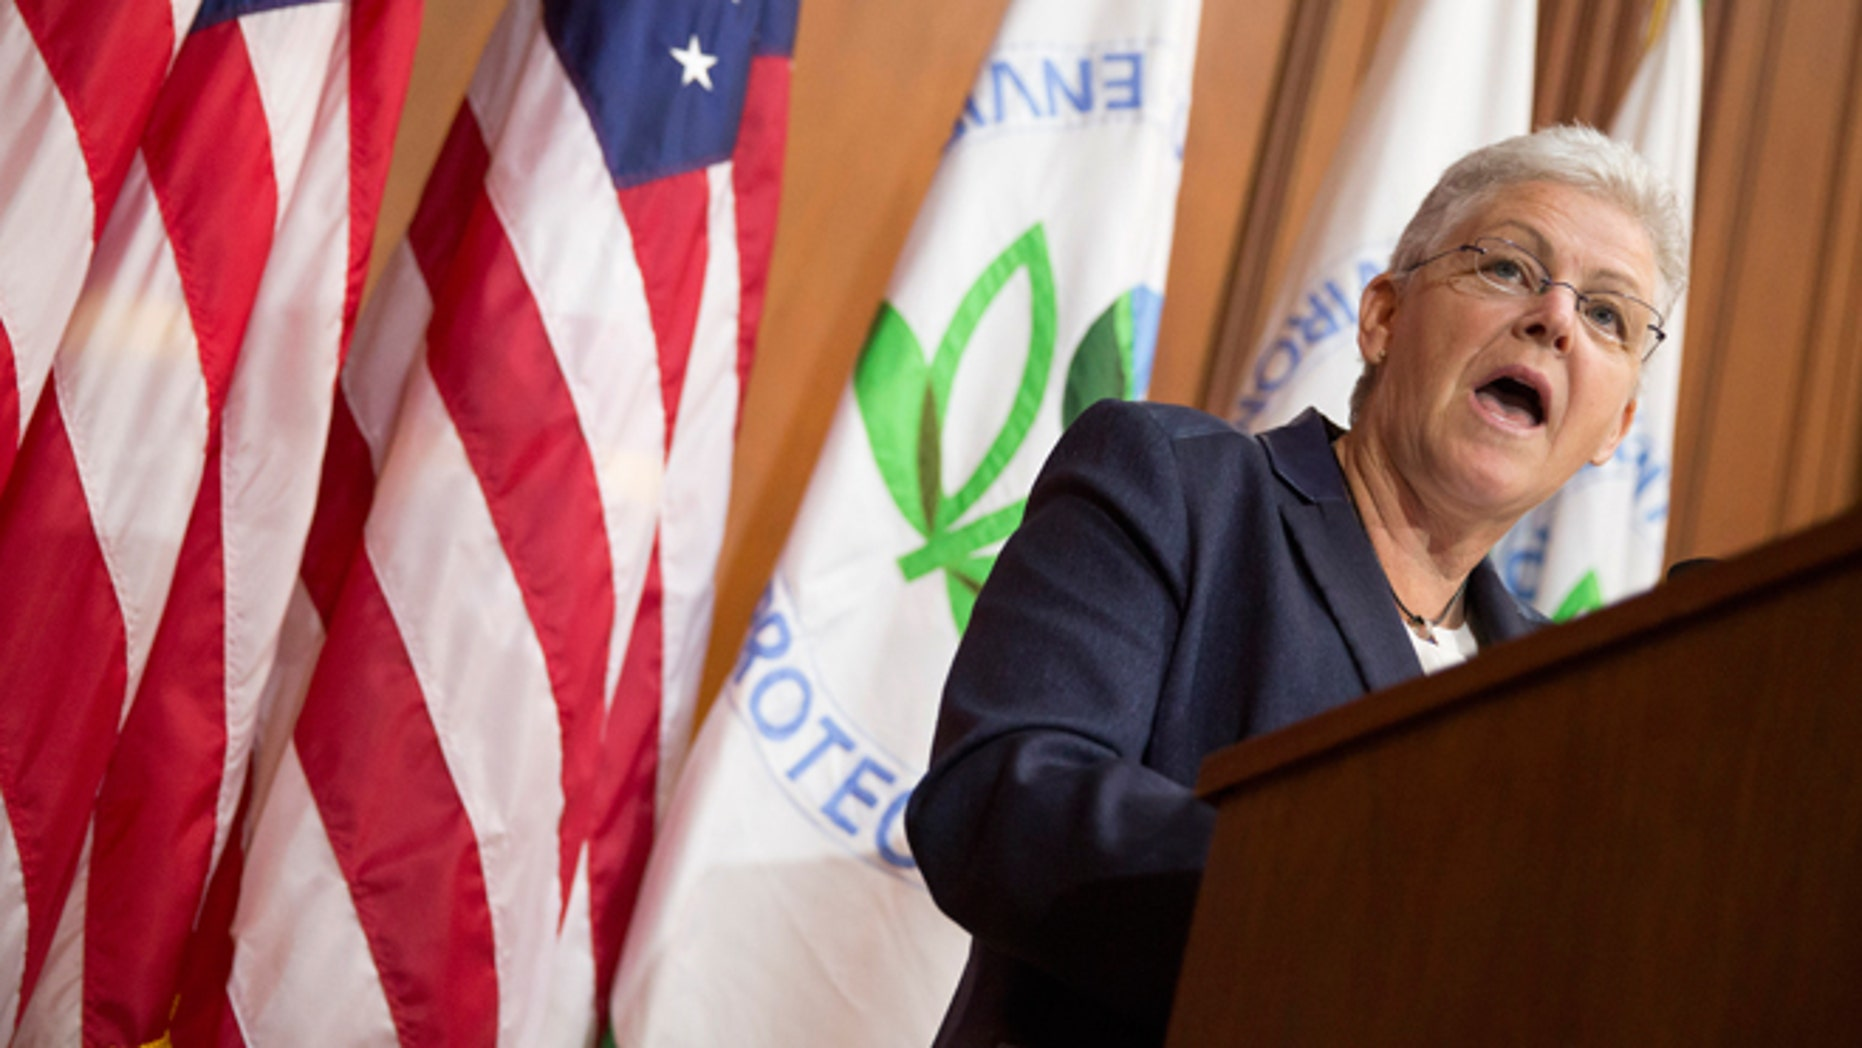 June 2, 2014: Environmental Protection Agency (EPA) Administrator Gina McCarthy speaks during an announcement of a plan to cut carbon dioxide emissions from power plants by 30 percent by 2030 at EPA headquarters in Washington. In a sweeping initiative to curb pollutants blamed for global warming, the Obama administration unveiled a plan that cuts carbon dioxide emissions from power plants by nearly a third over the next 15 years, but pushes the deadline for some states to comply until long after President Obama leaves office.